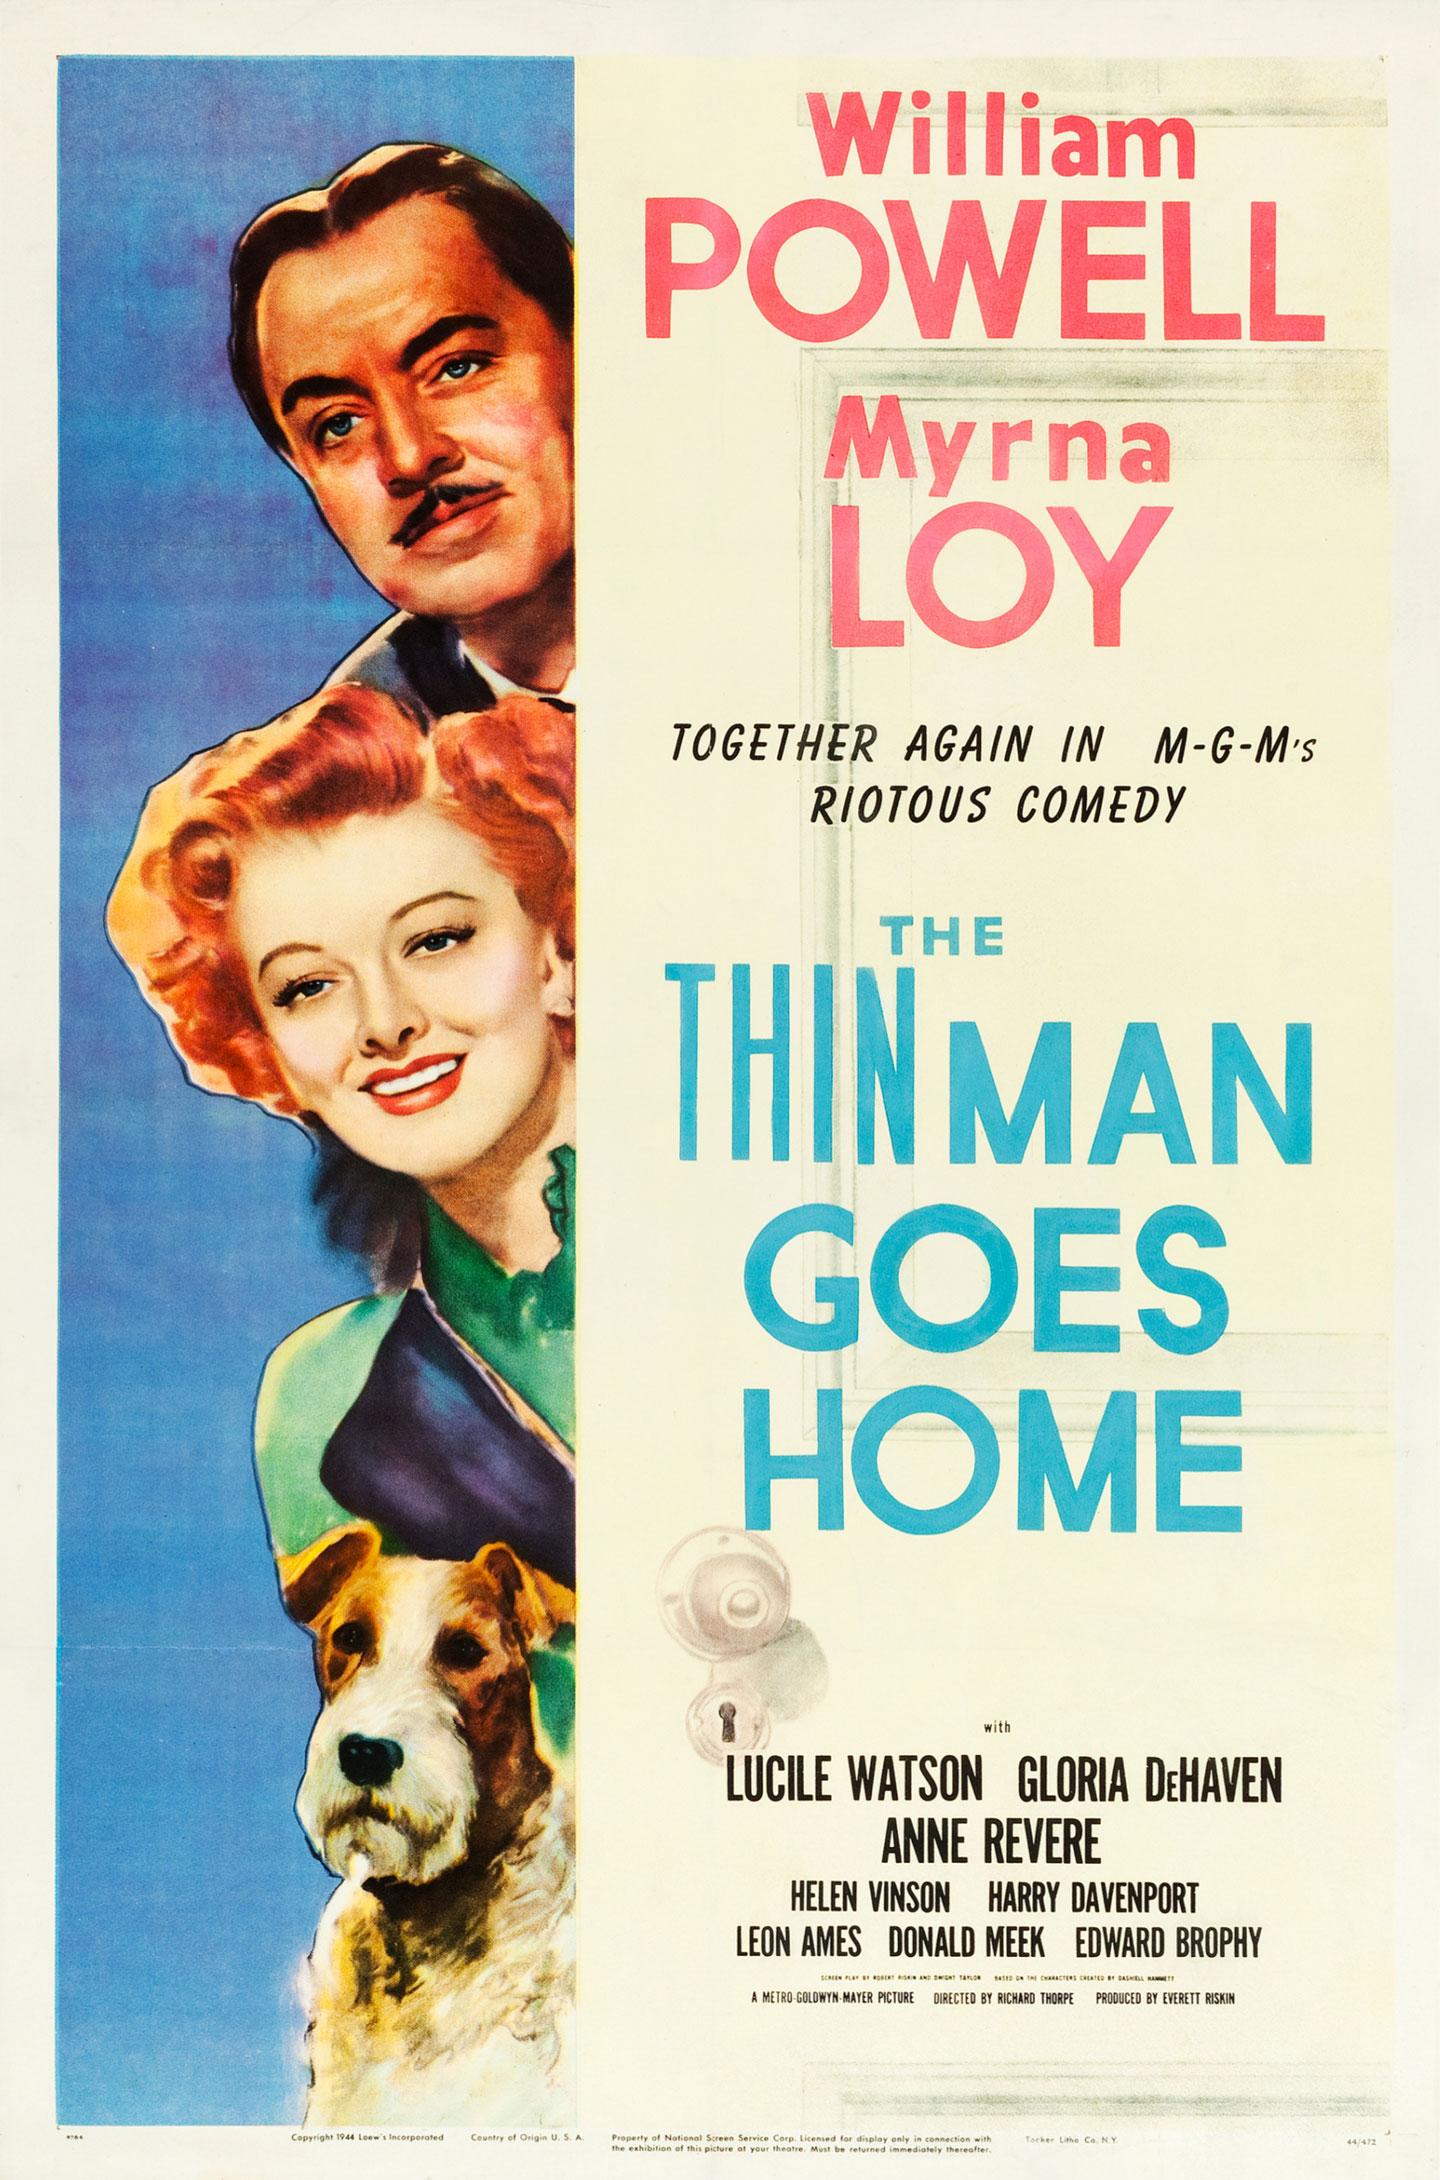 the thin man goes home us 1 sheet movie poster